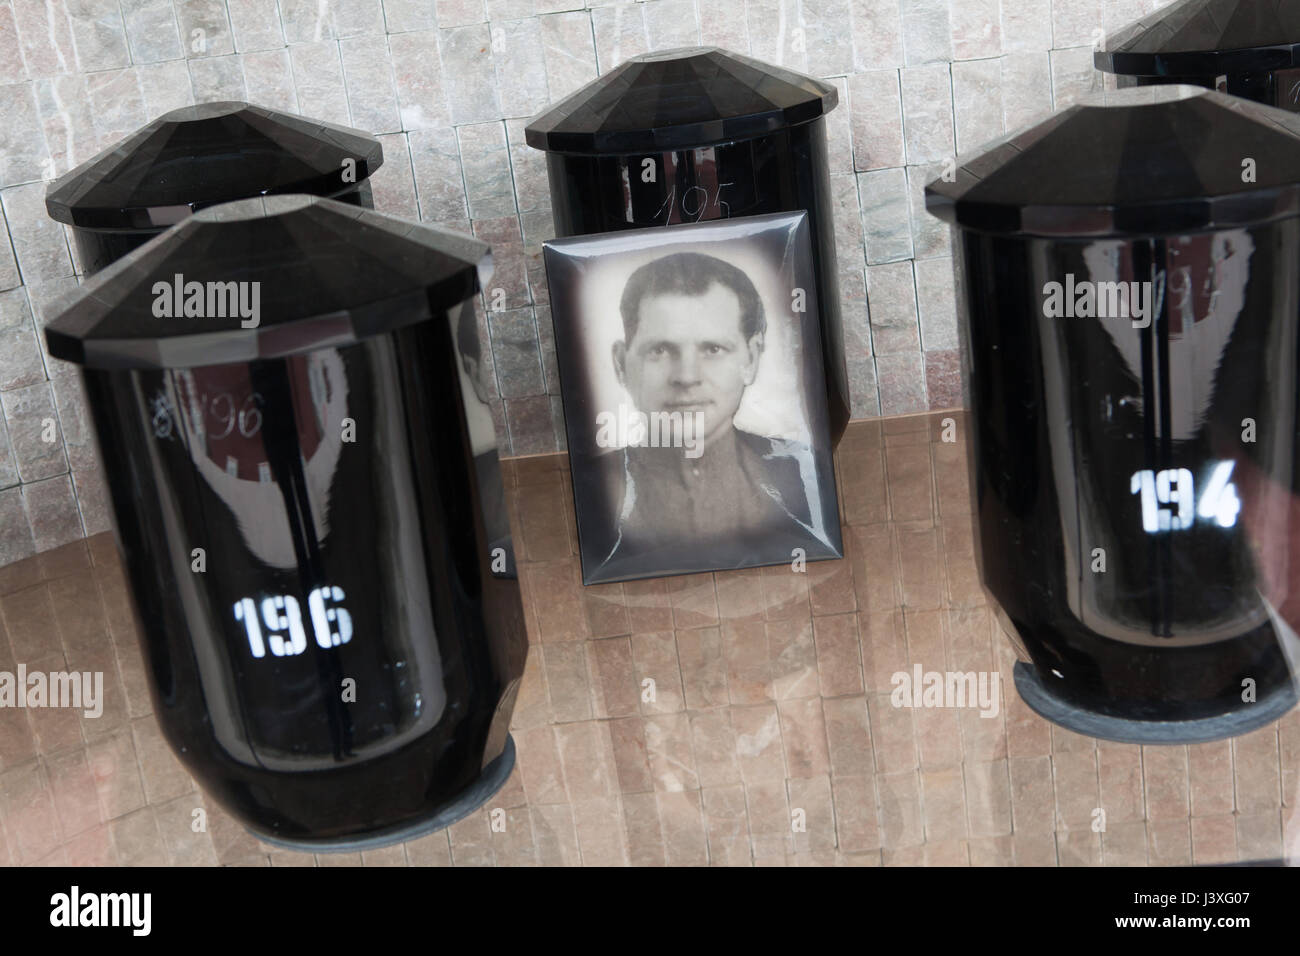 Funerary urns of Bohemian crystal glass containing the ashes of Soviet military officers fallen during World War - Stock Image